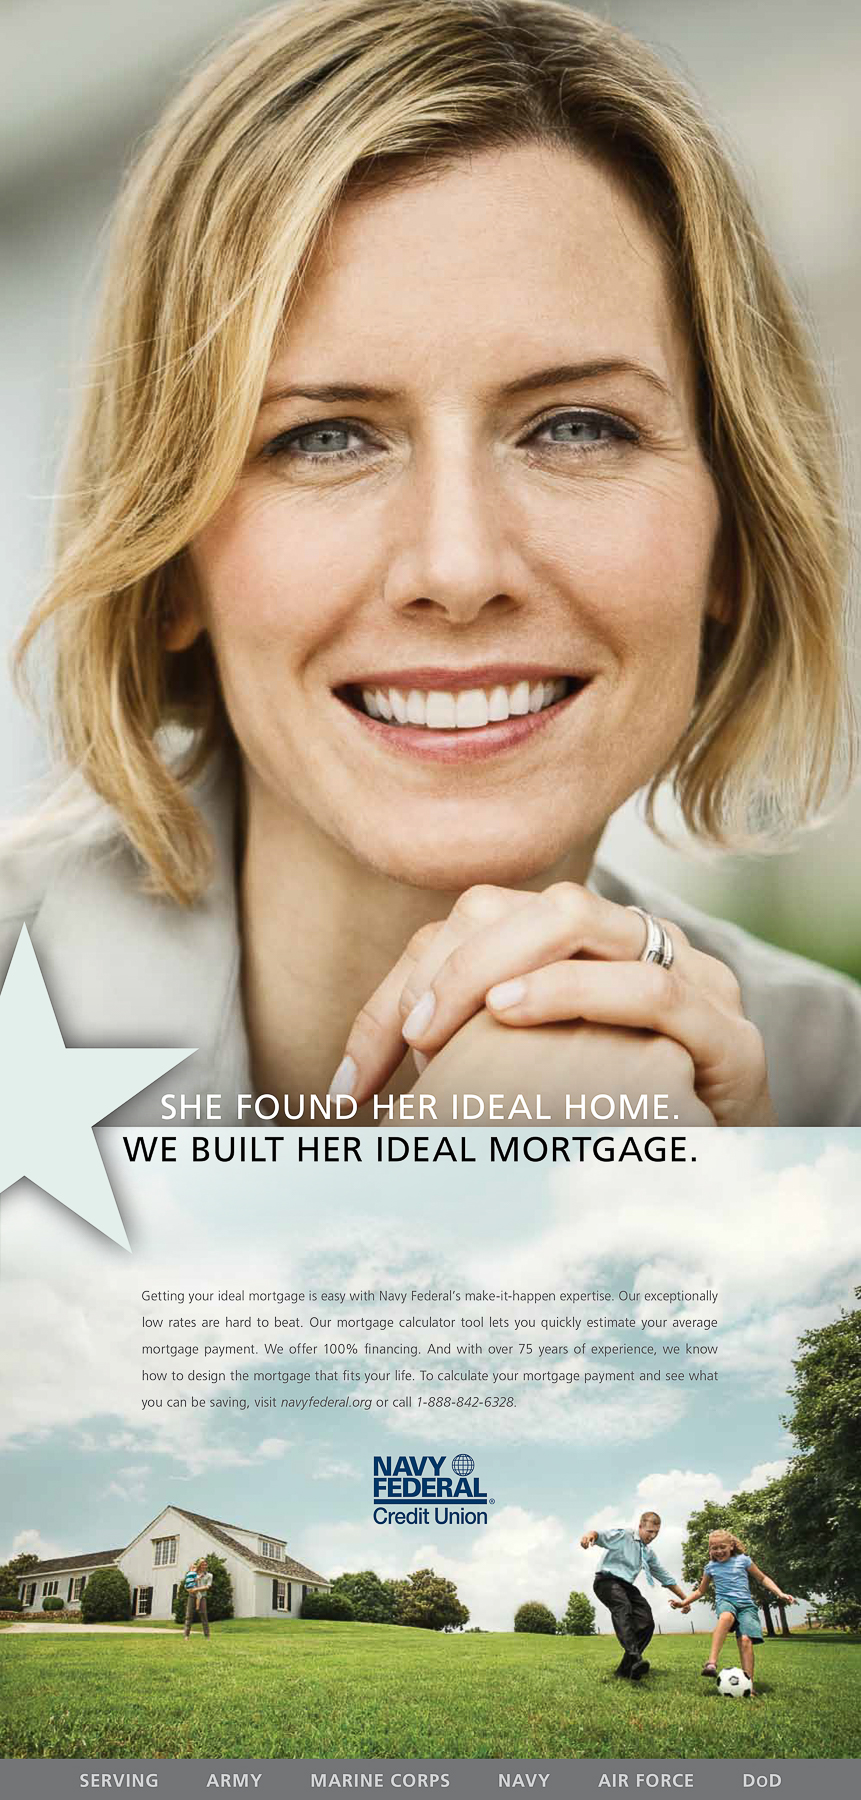 Navy Federal Lifestyle Portrait Advertising